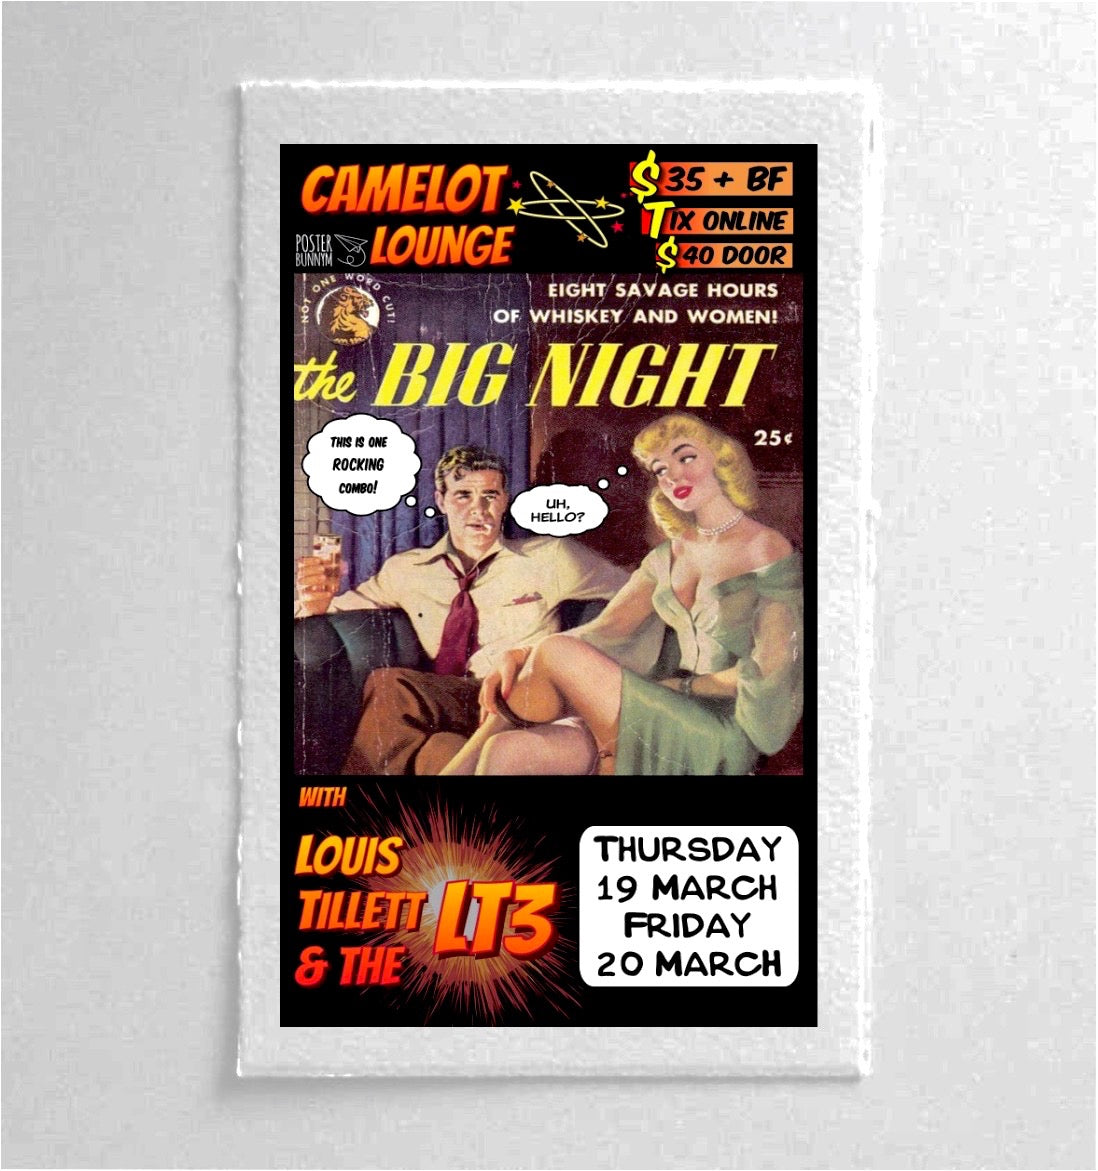 Louis Tillet Retro Style Wallpaper Poster - The Big Night